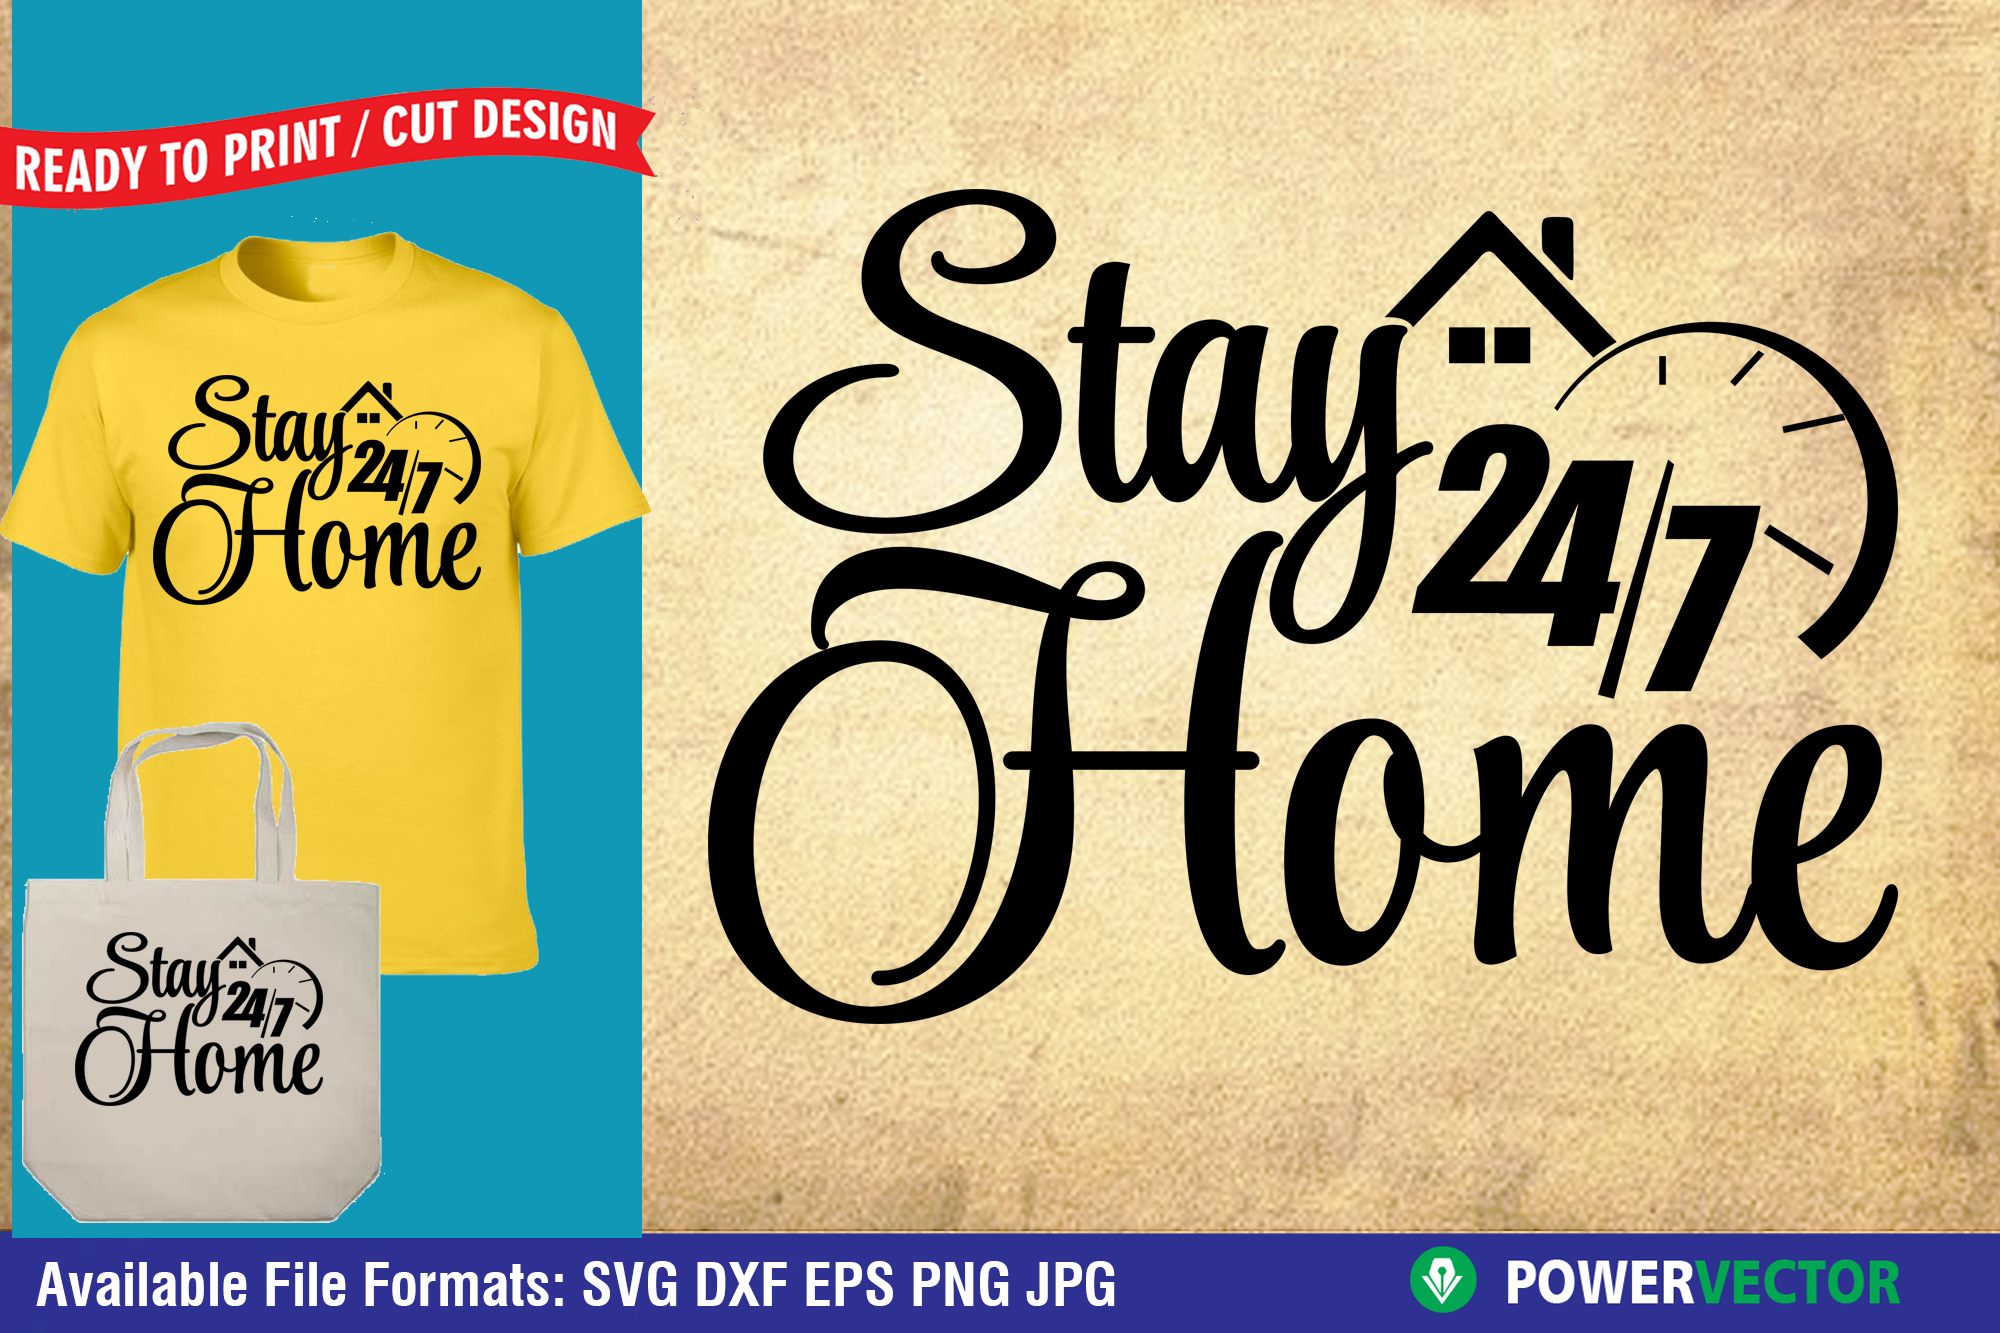 Download Free Stay Home 24 7 Svg Dxf Cut Files Grafico Por Powervector for Cricut Explore, Silhouette and other cutting machines.